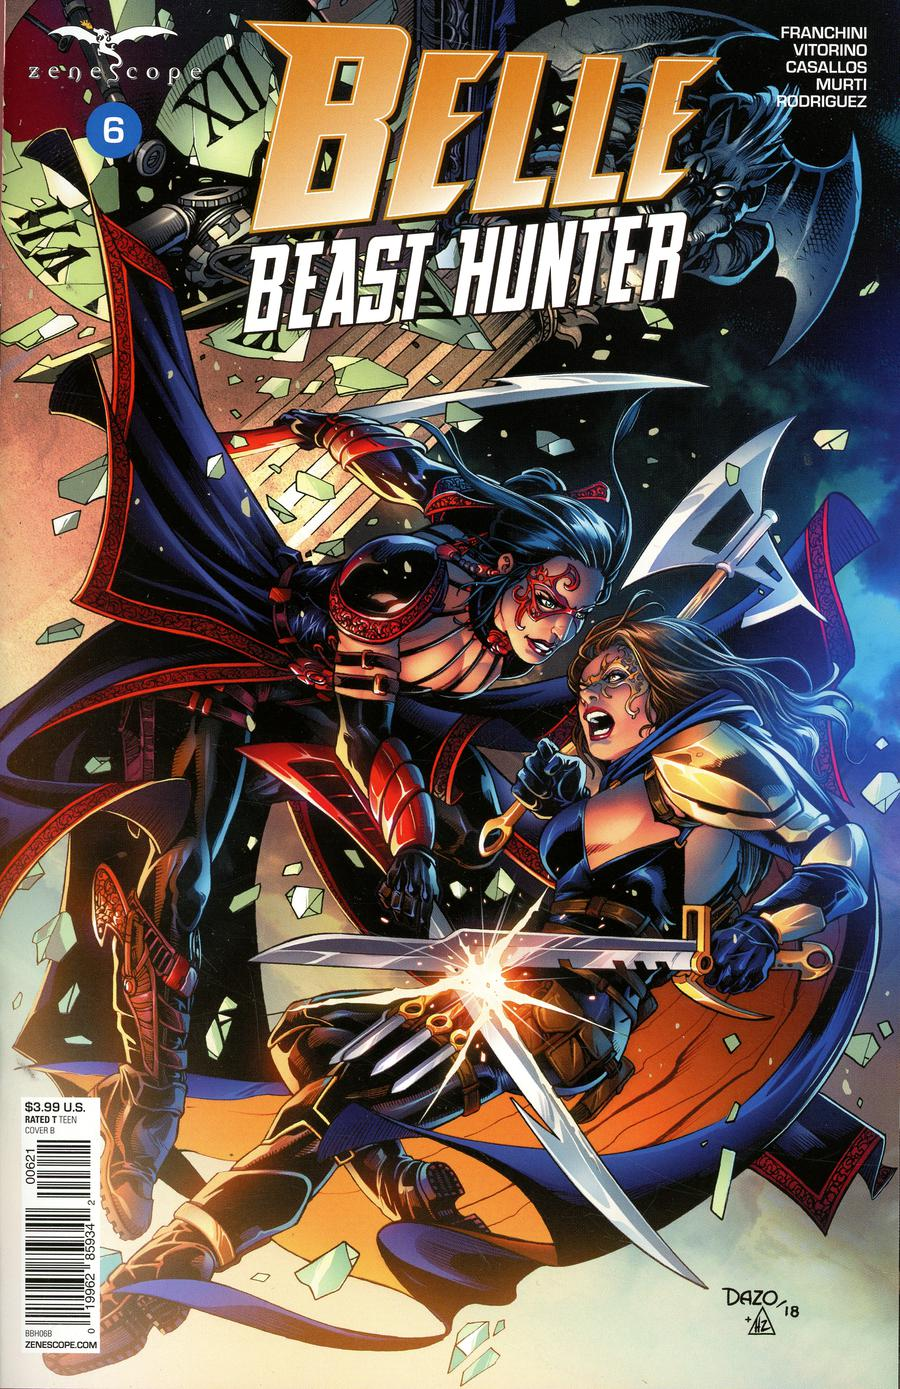 Grimm Fairy Tales Presents Belle Beast Hunter #6 Cover B Bong Dazo